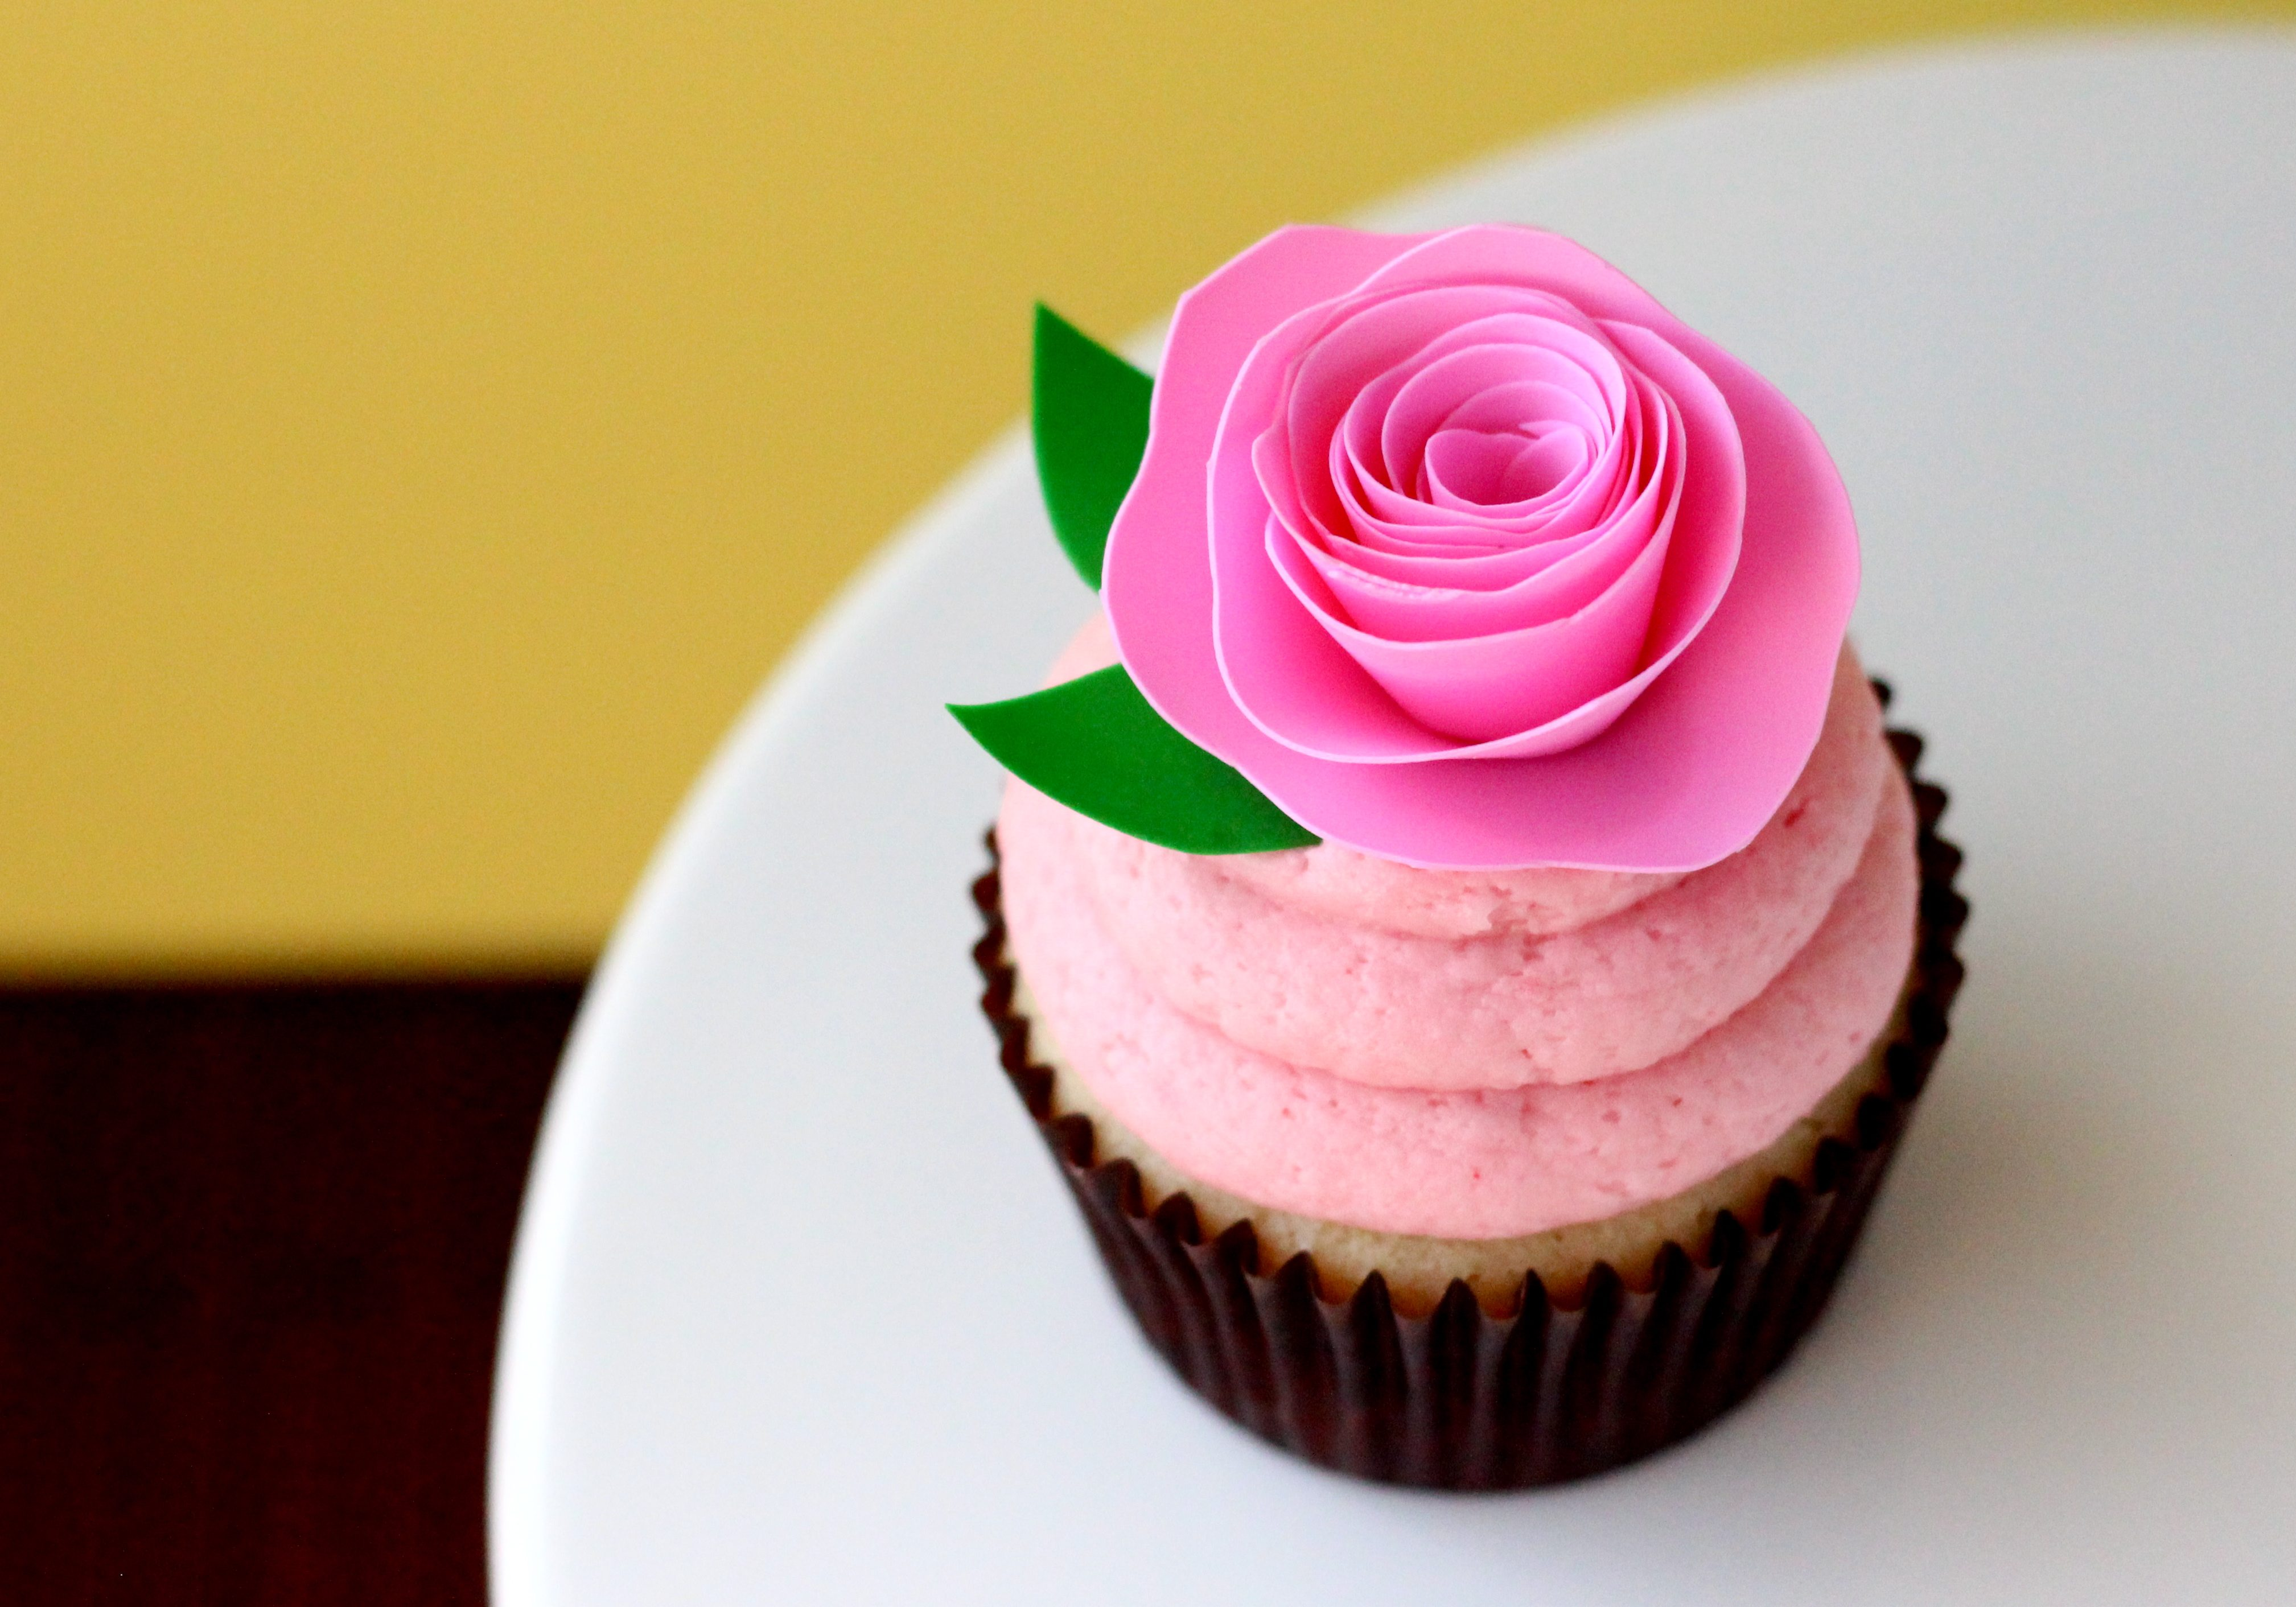 Cool Easy Cupcakes To Make | www.galleryhip.com - The Hippest Pics